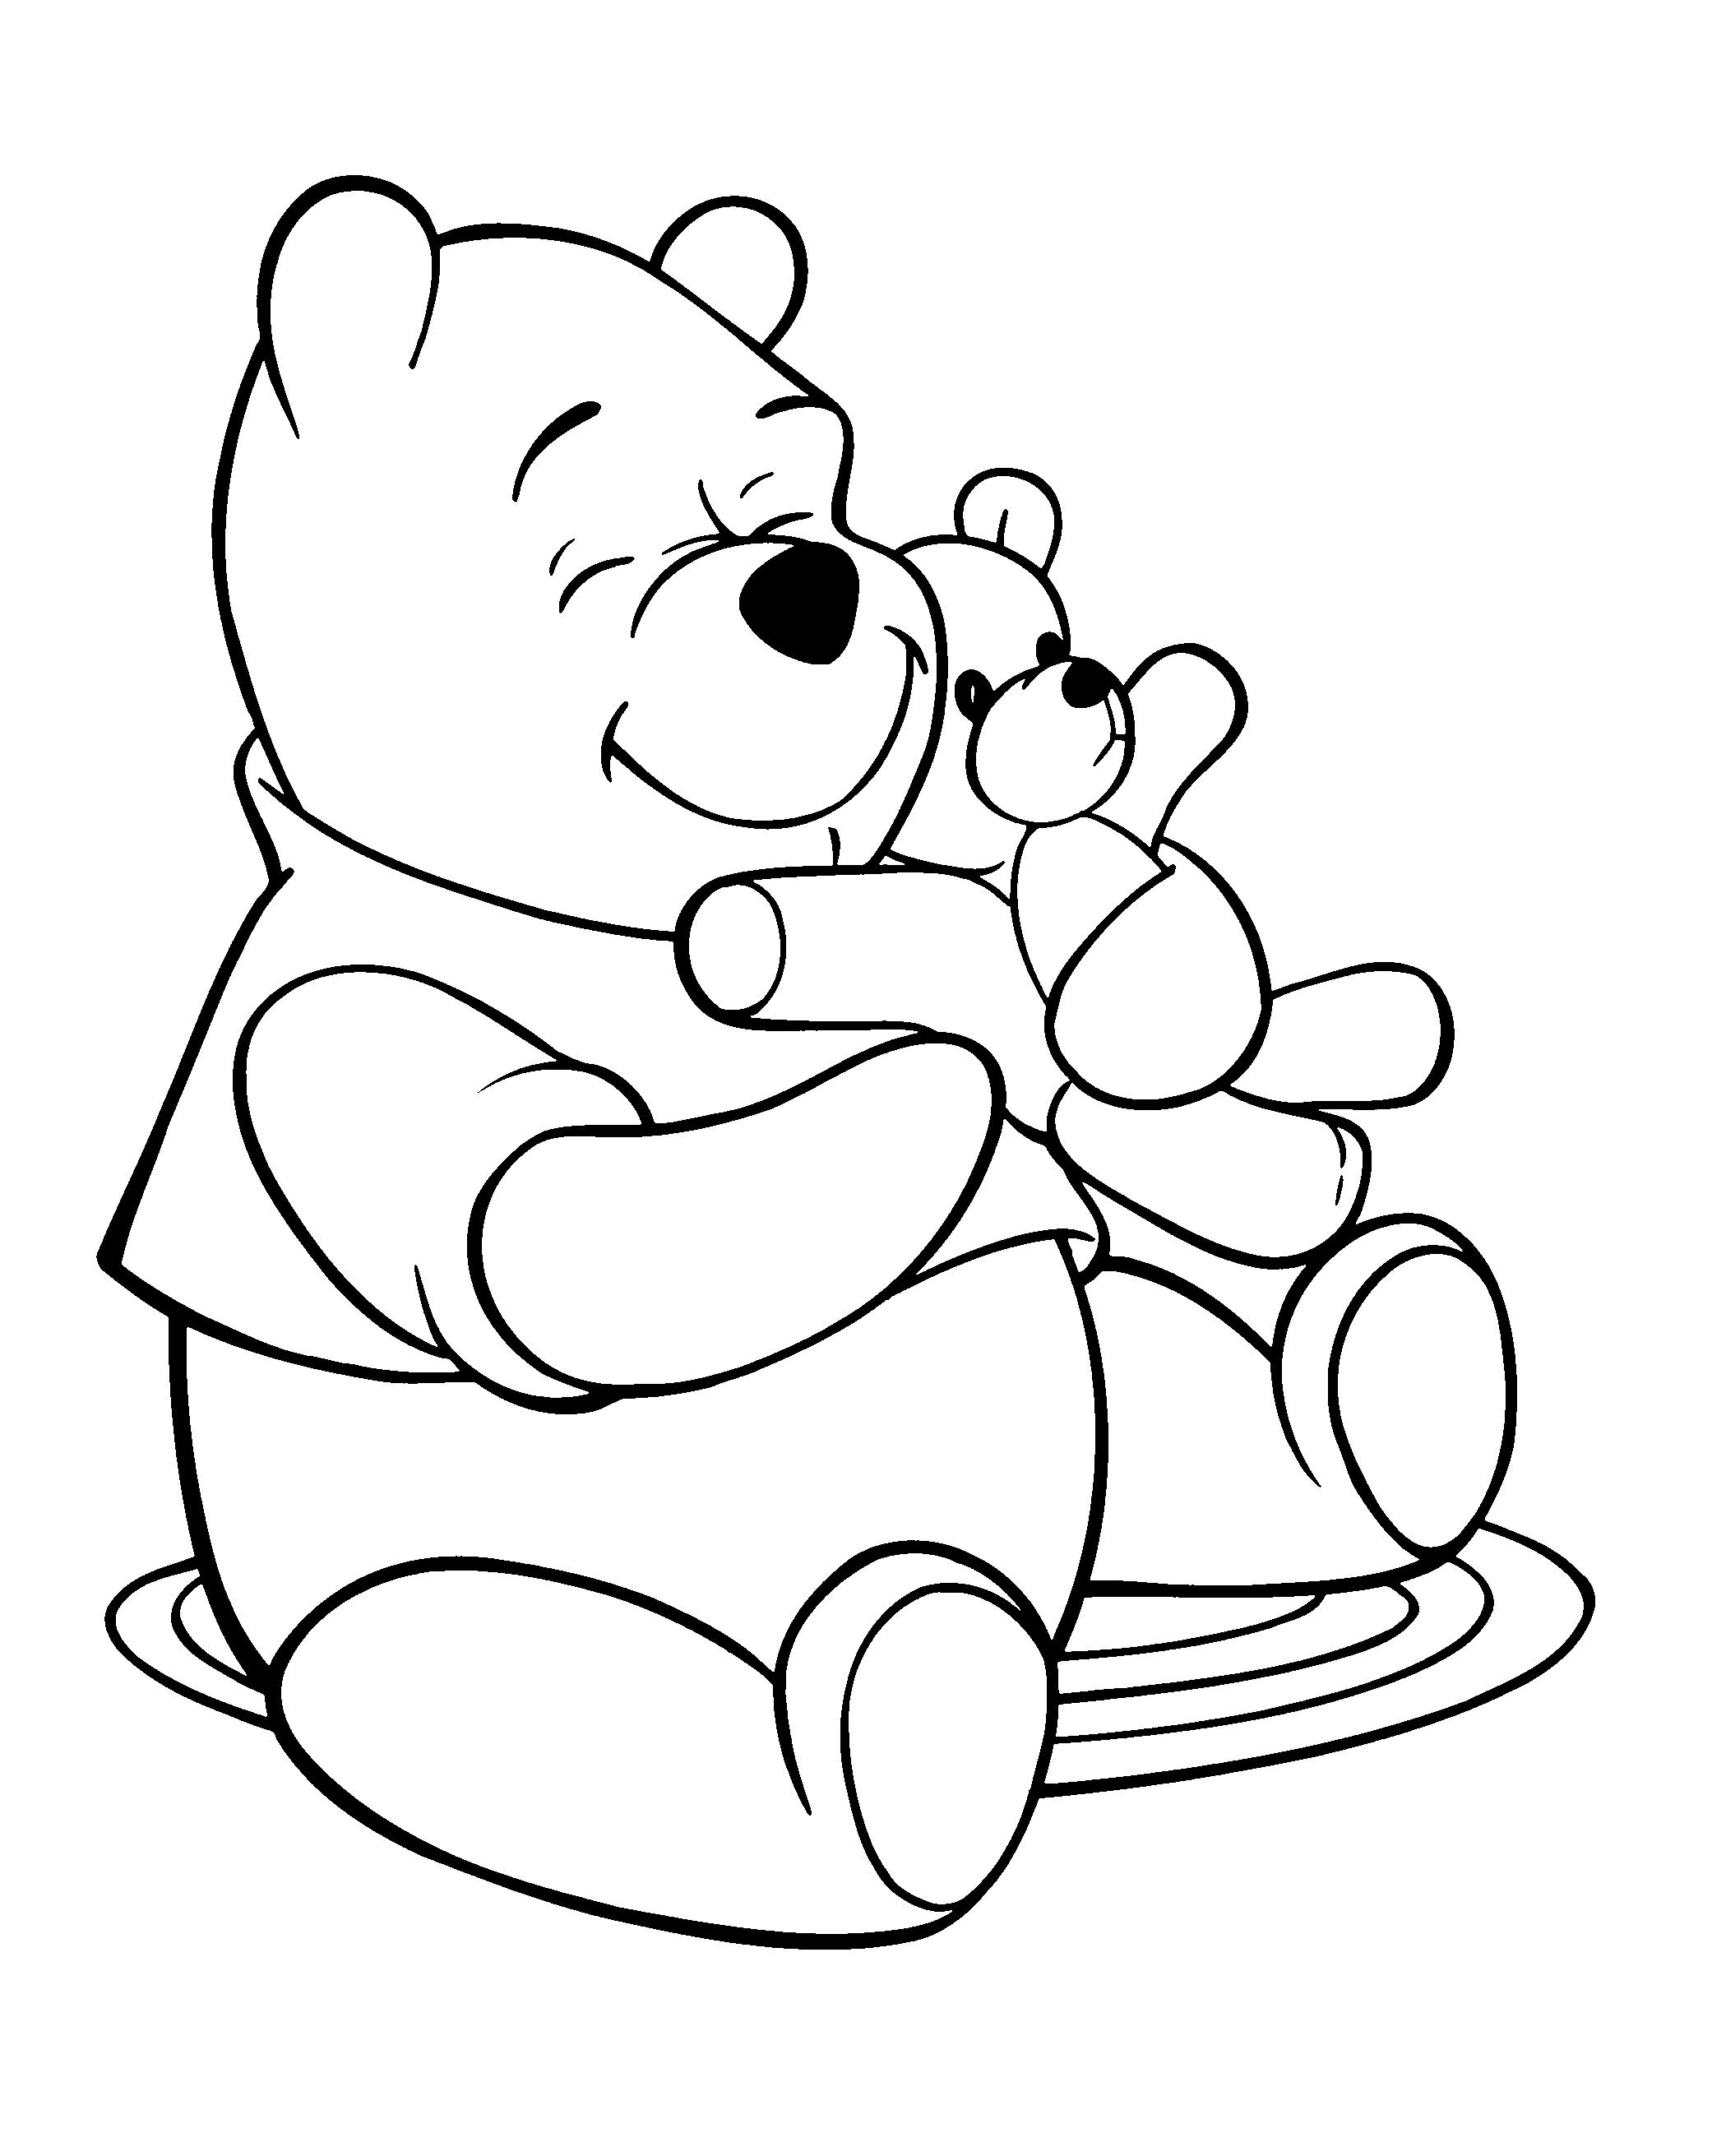 Coloring book pages of pooh bear ~ Pooh Bear Coloring Pages Online | Thousand of the Best ...